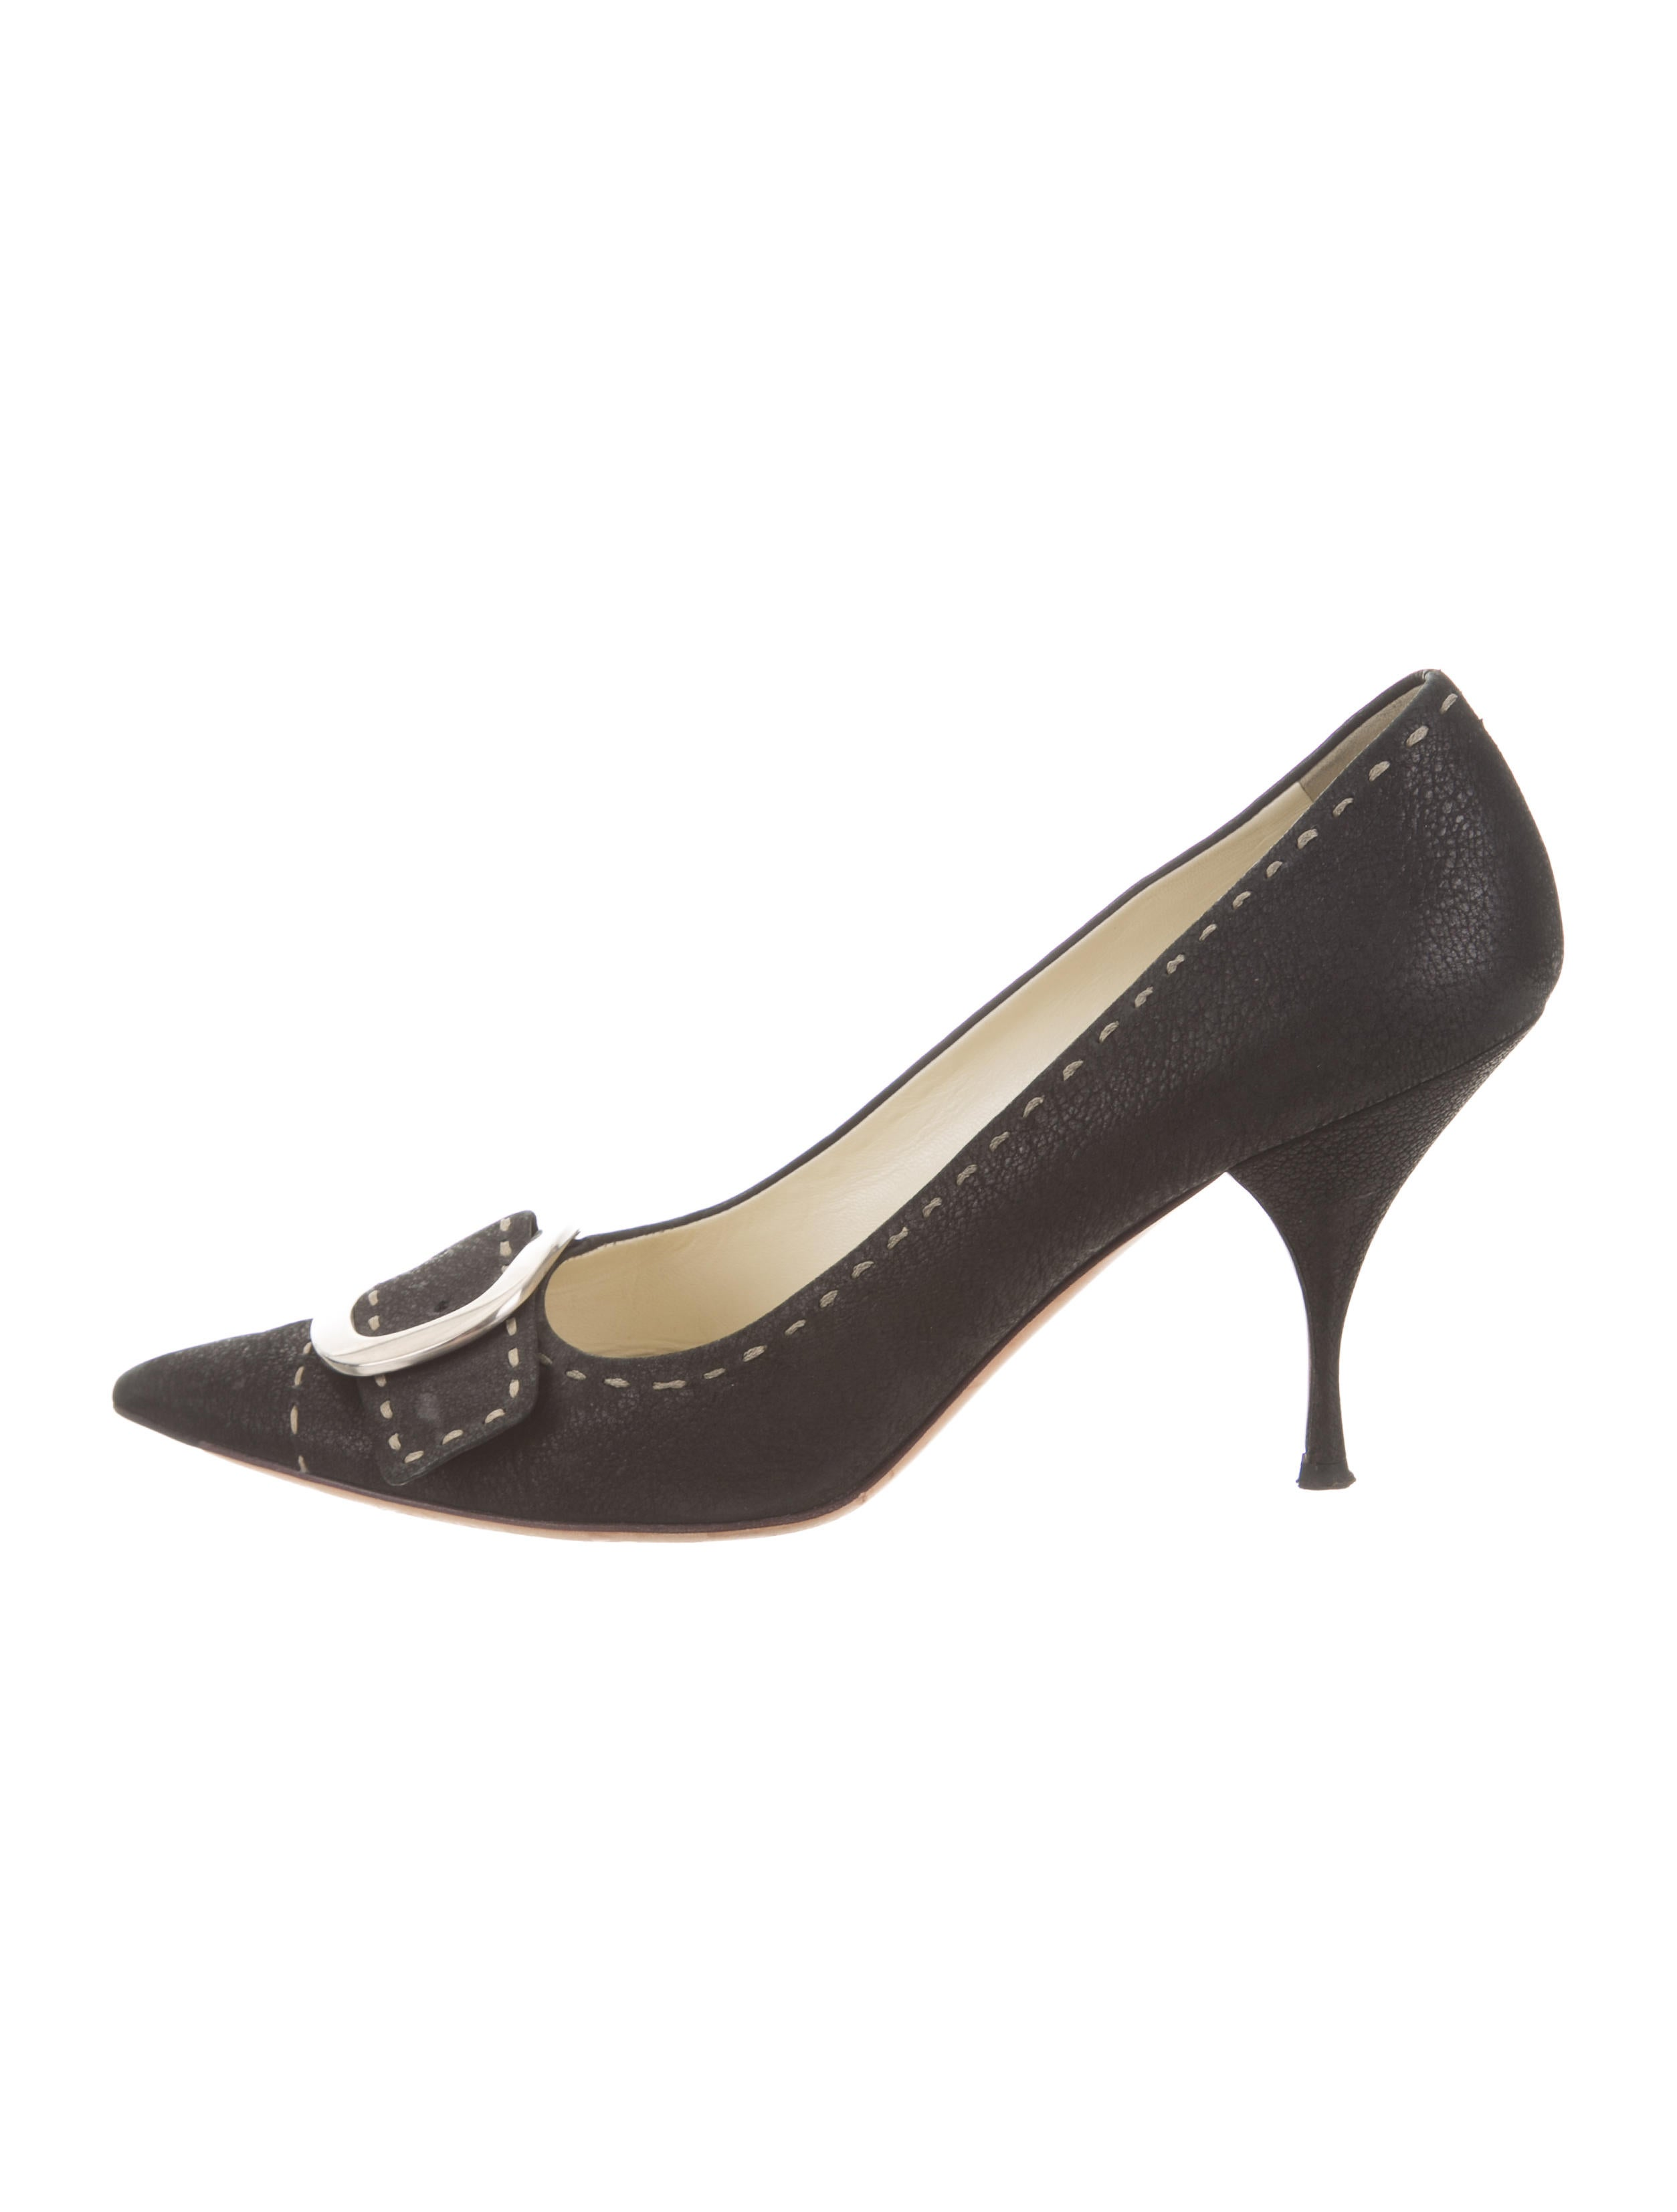 Prada Buckle-Accented Pointed-Toe Pumps discount websites big discount sale eastbay discount excellent cheap purchase HNSMSHUjY